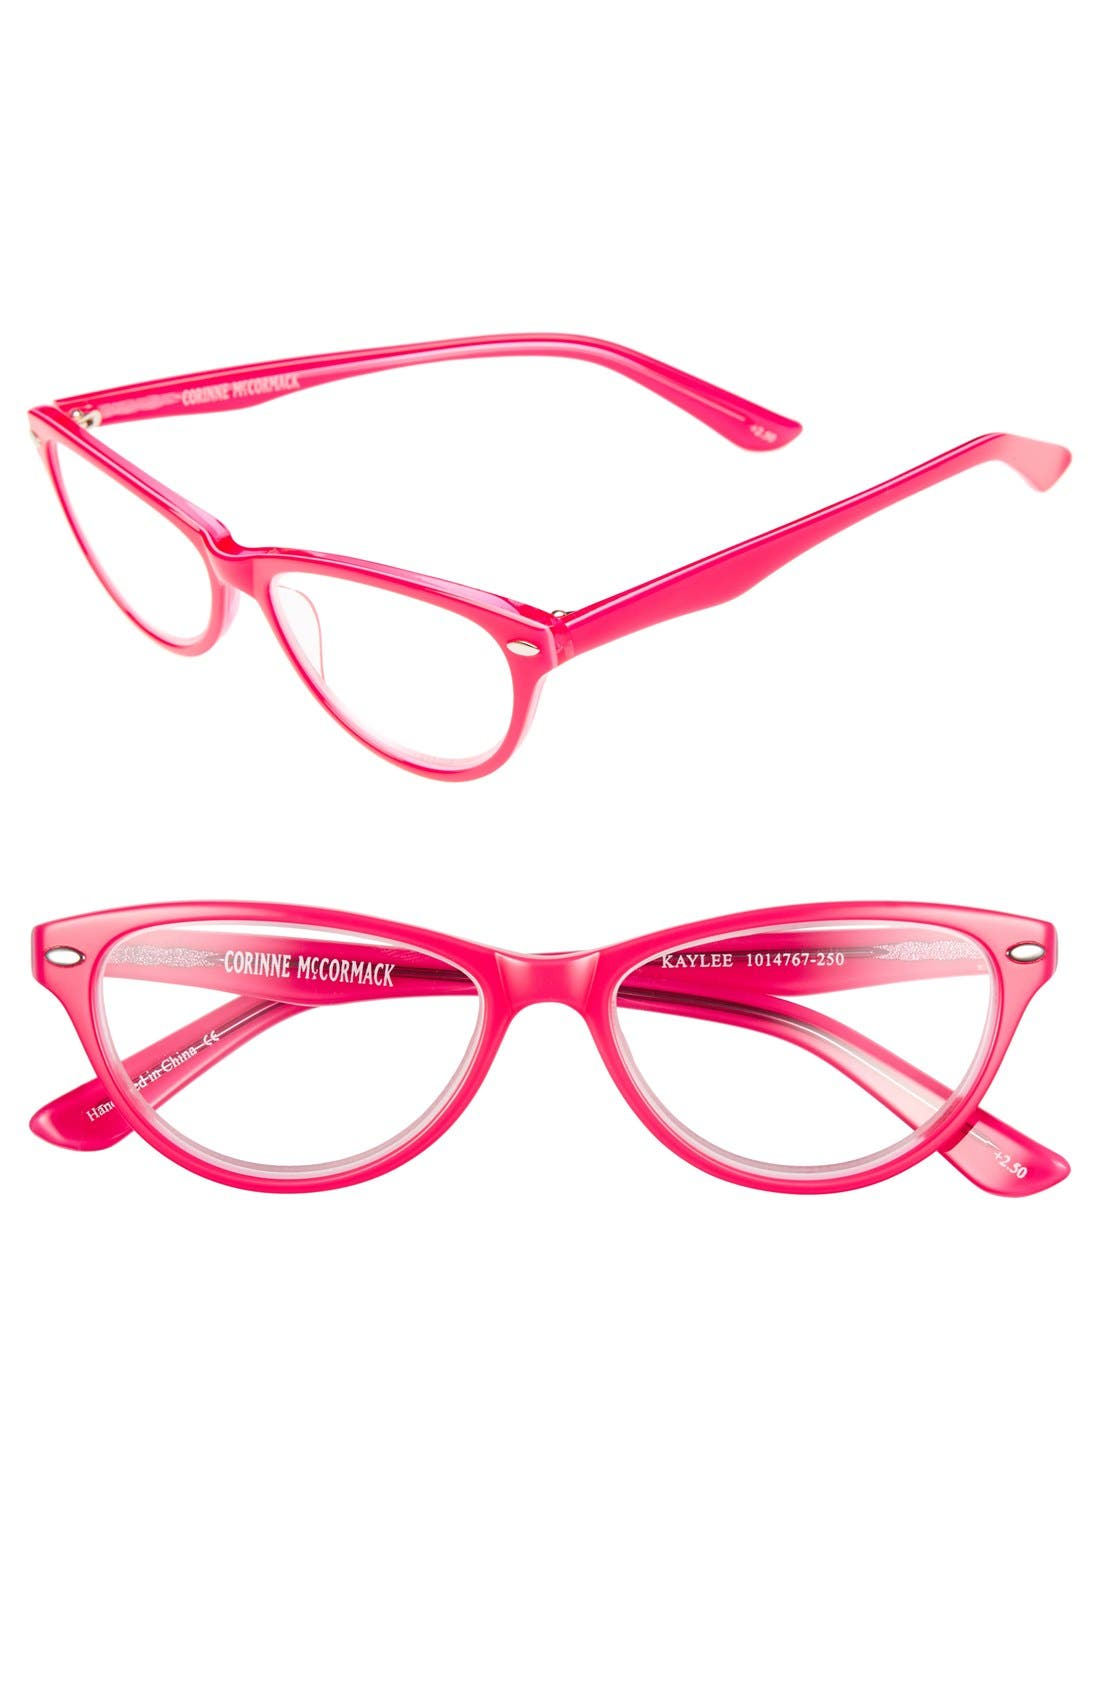 'Kaylee' Reading Glasses,                             Main thumbnail 1, color,                             Hot Pink